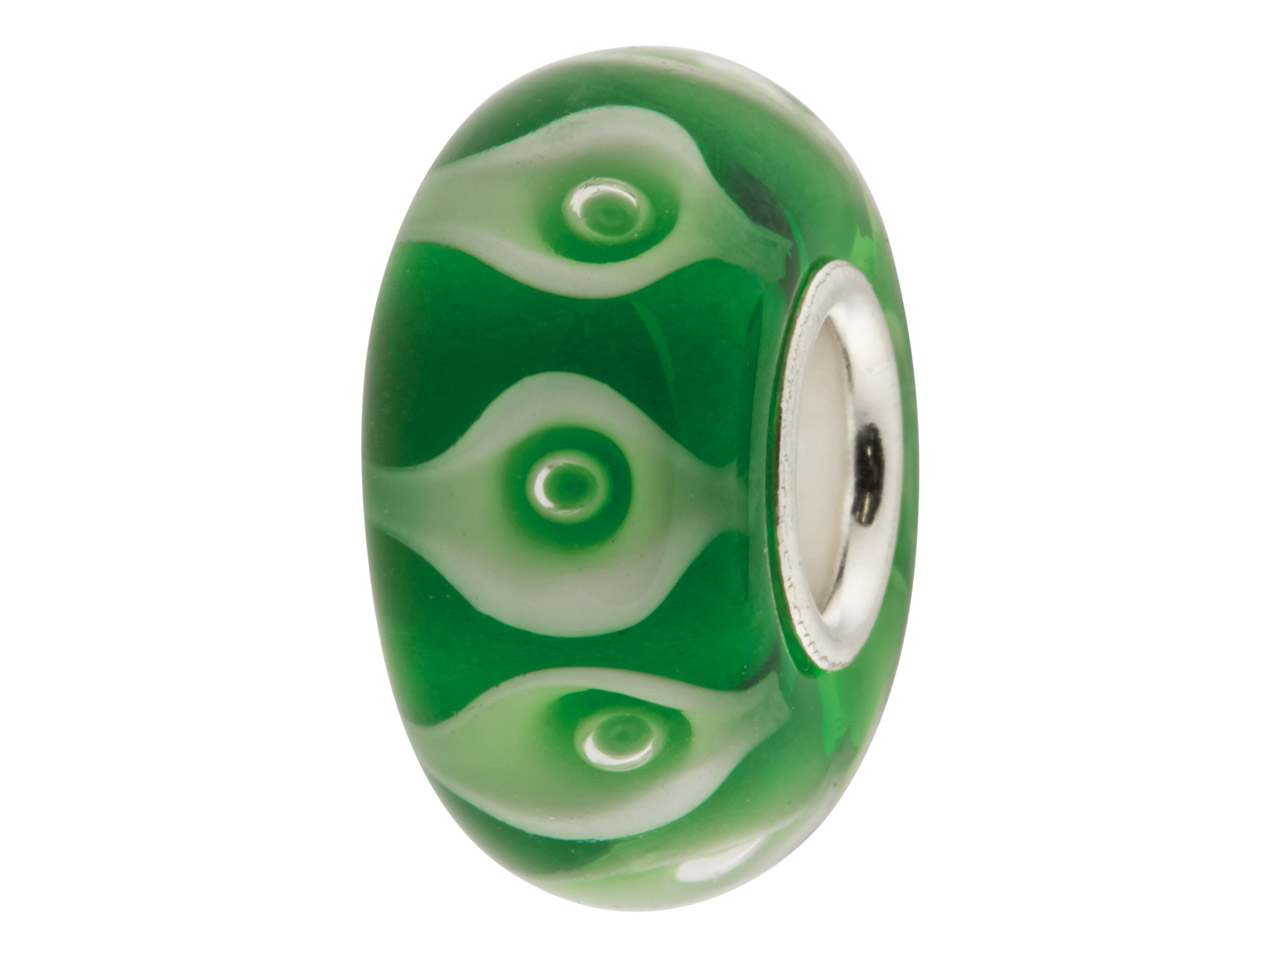 Glass Charm Bead, Green Circles    With Bubbles, Sterling Silver Core